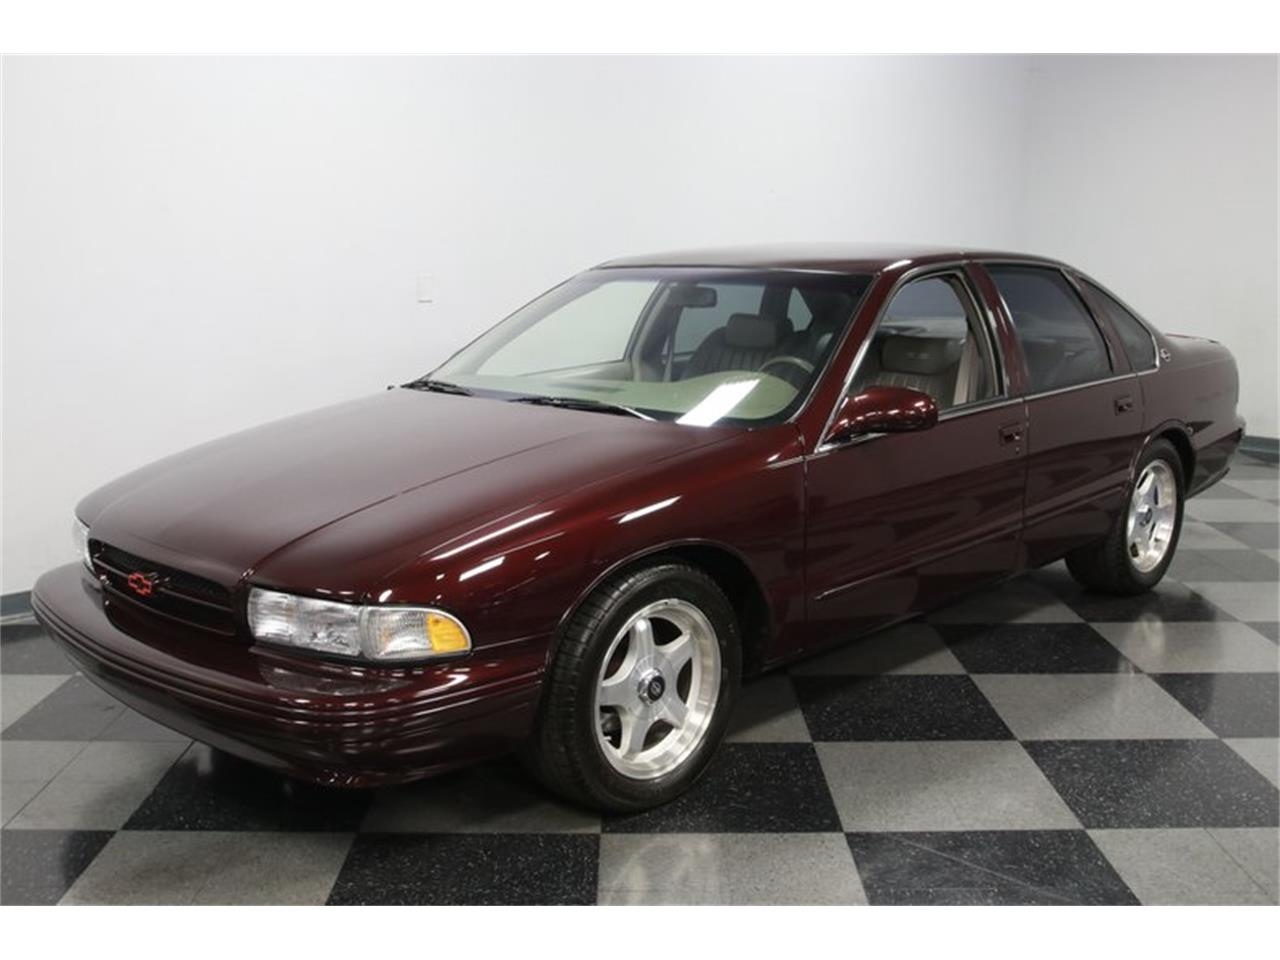 1996 Chevrolet Impala (CC-1410394) for sale in Concord, North Carolina